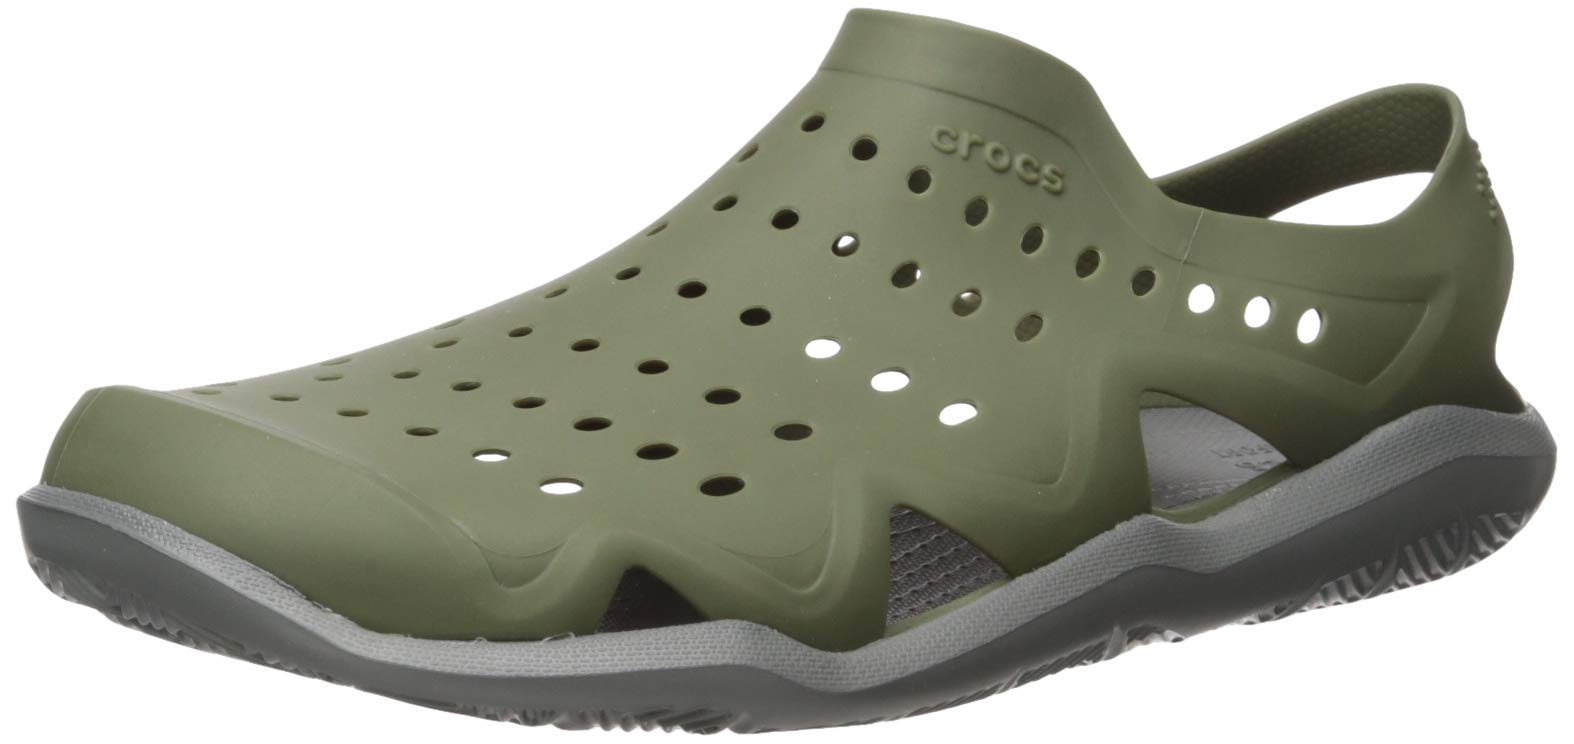 Crocs Men's Swiftwater Wave Sandal Water Shoe, Army Green/Slate Grey, 13 M US by Crocs